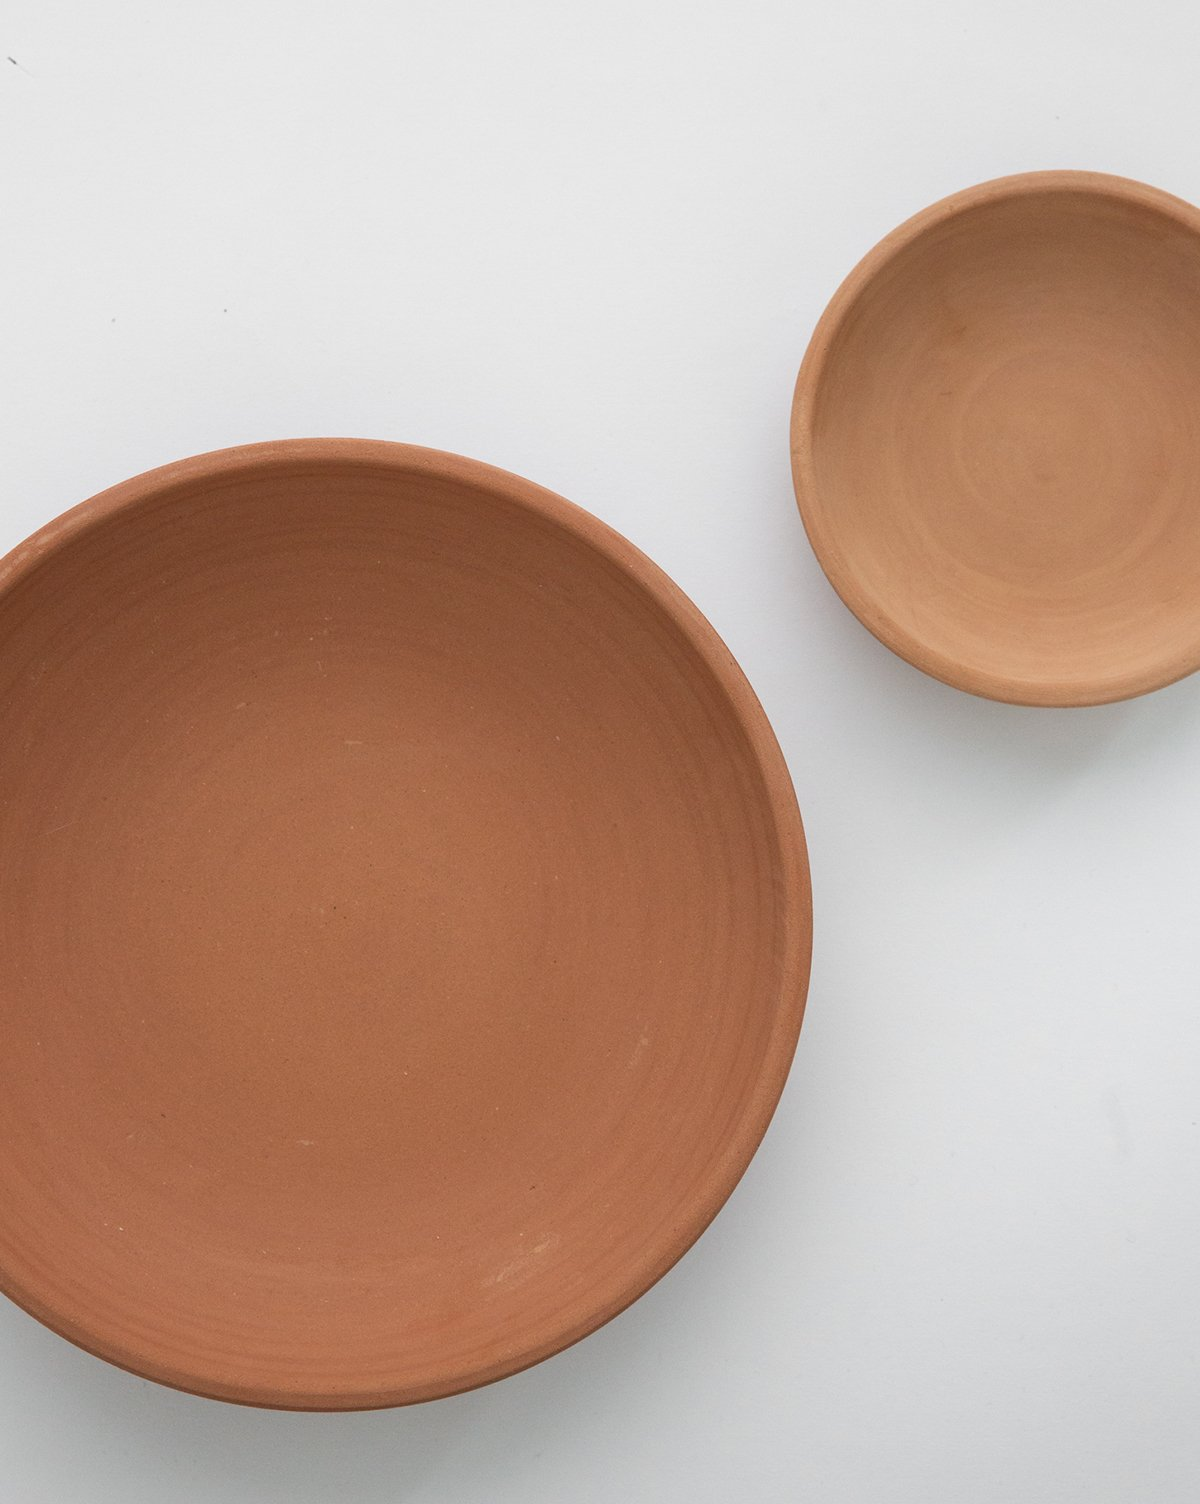 low_terracotta_bowl_ce61f0e1-6744-4f62-8b27-67e1a3356814.jpg